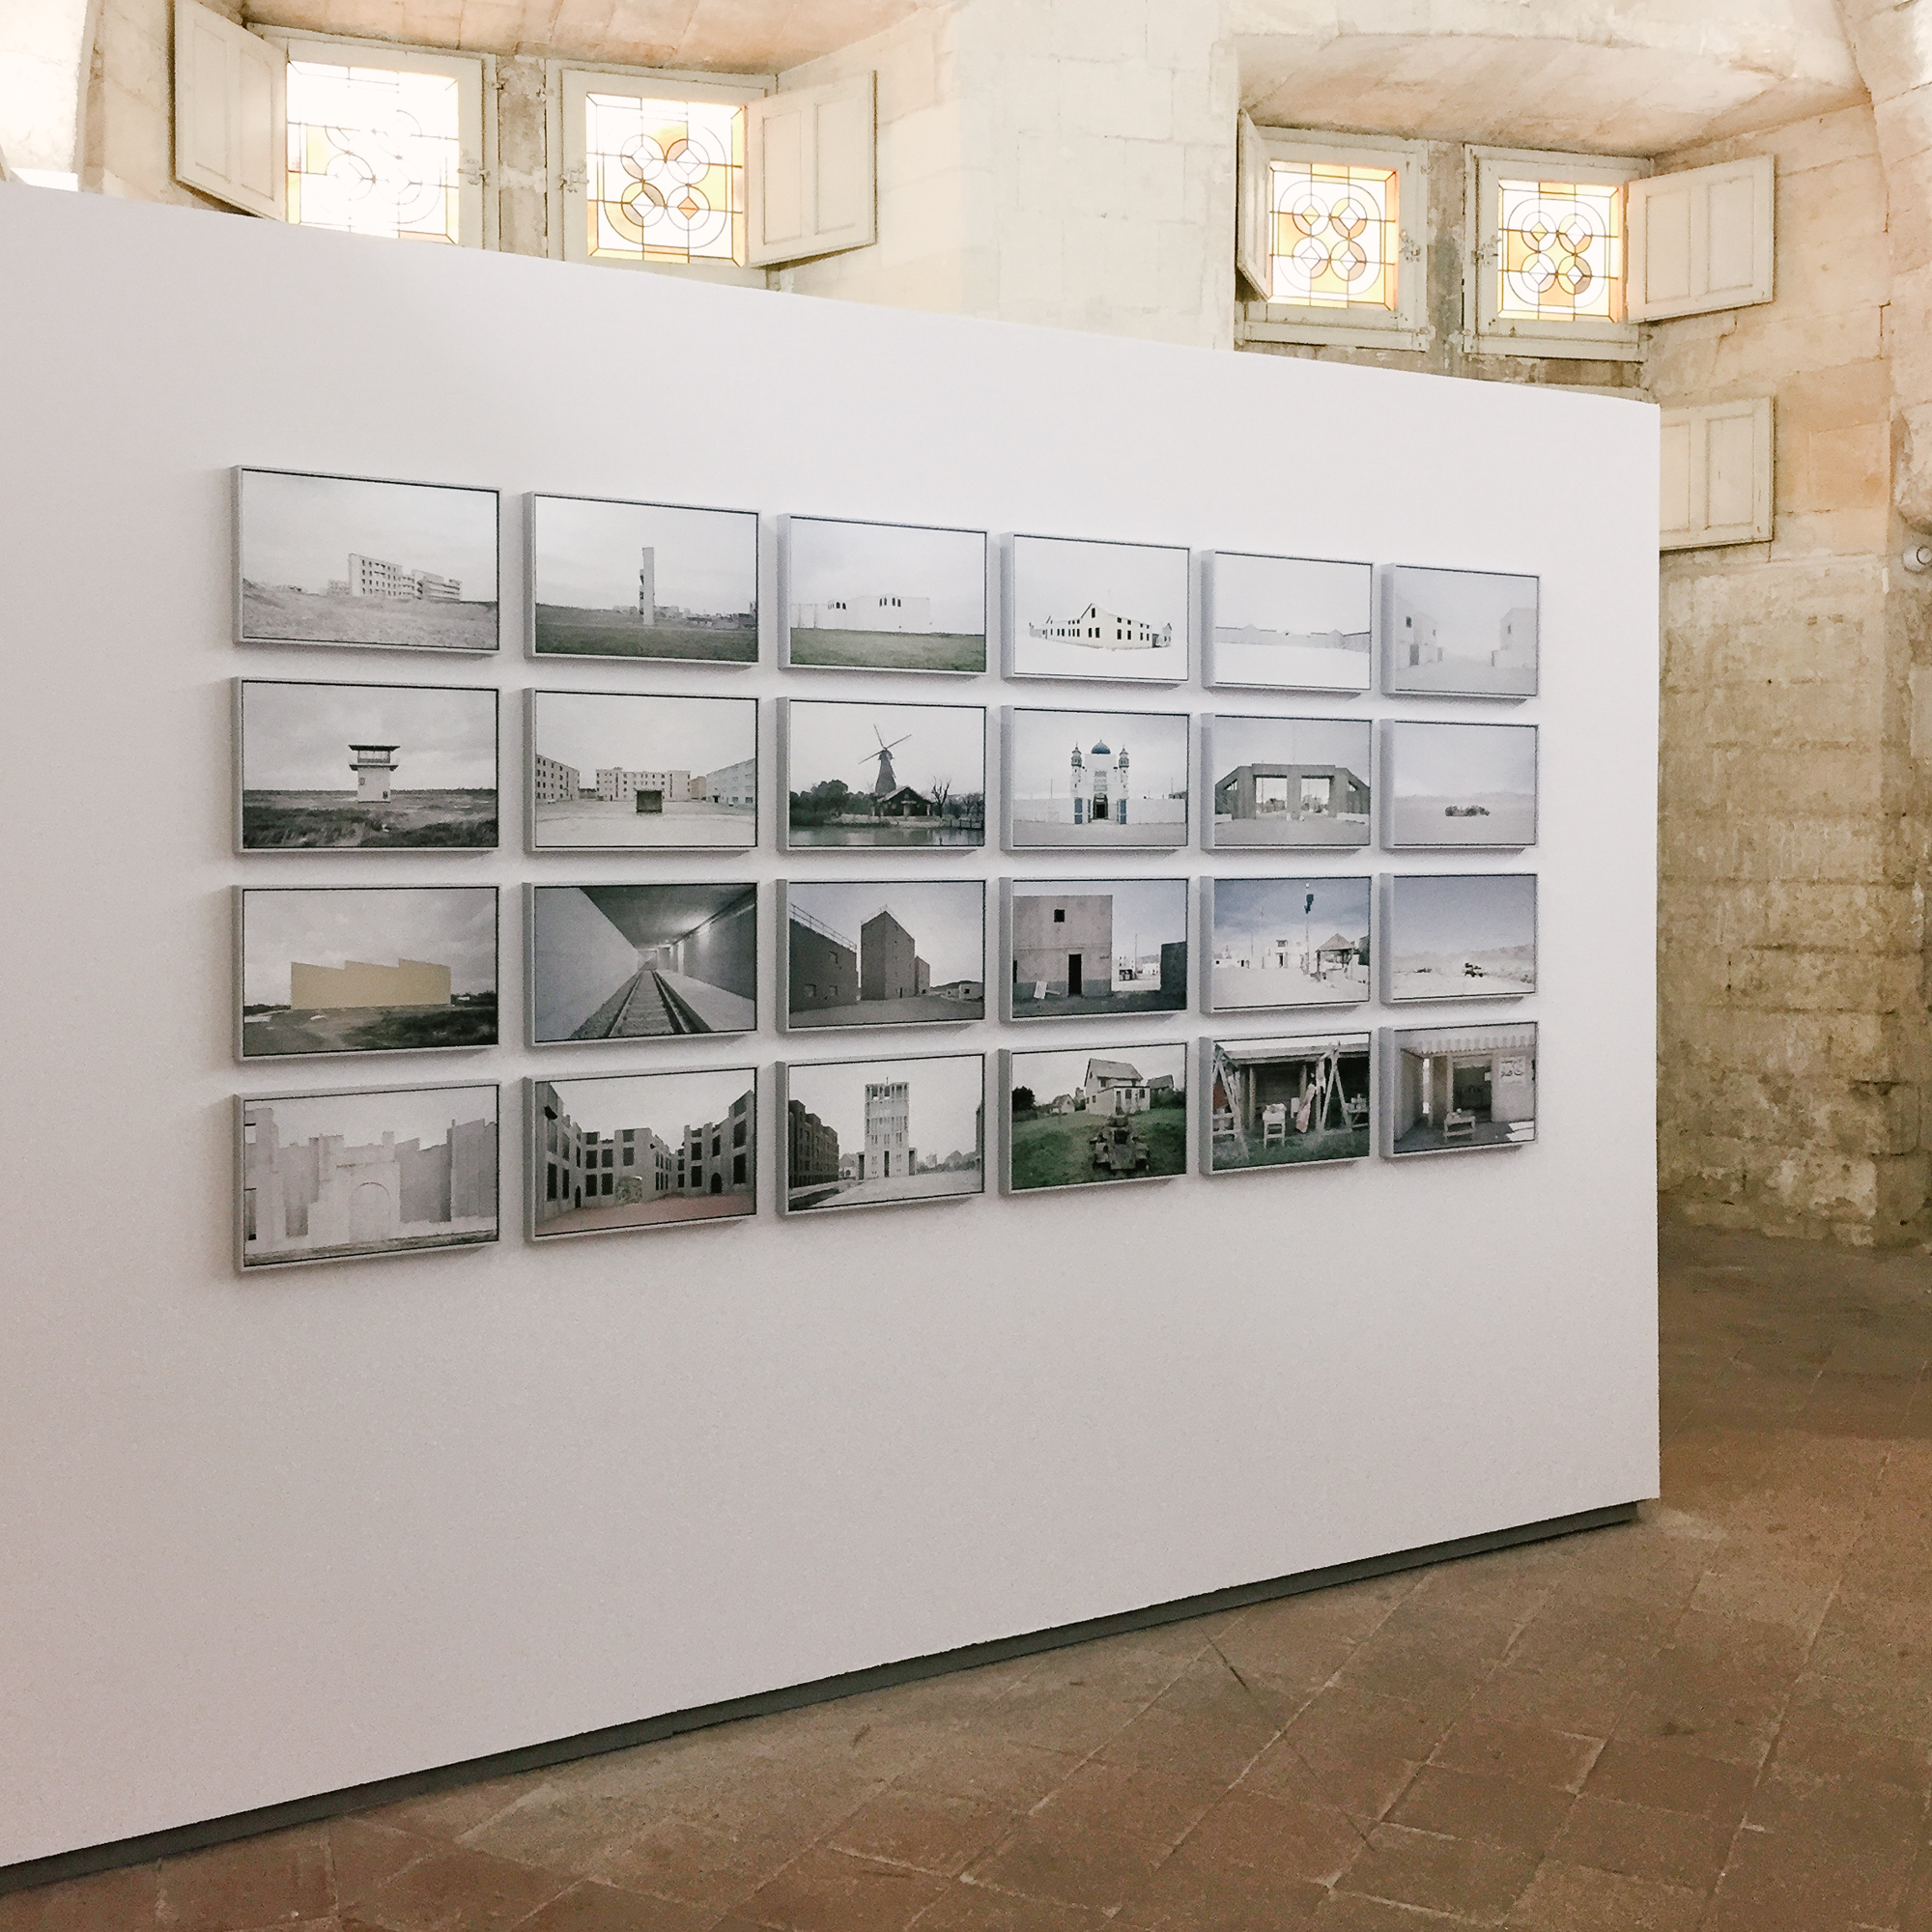 arles2018_thephotoexhibitionarchive_GREGOR SAILER-4